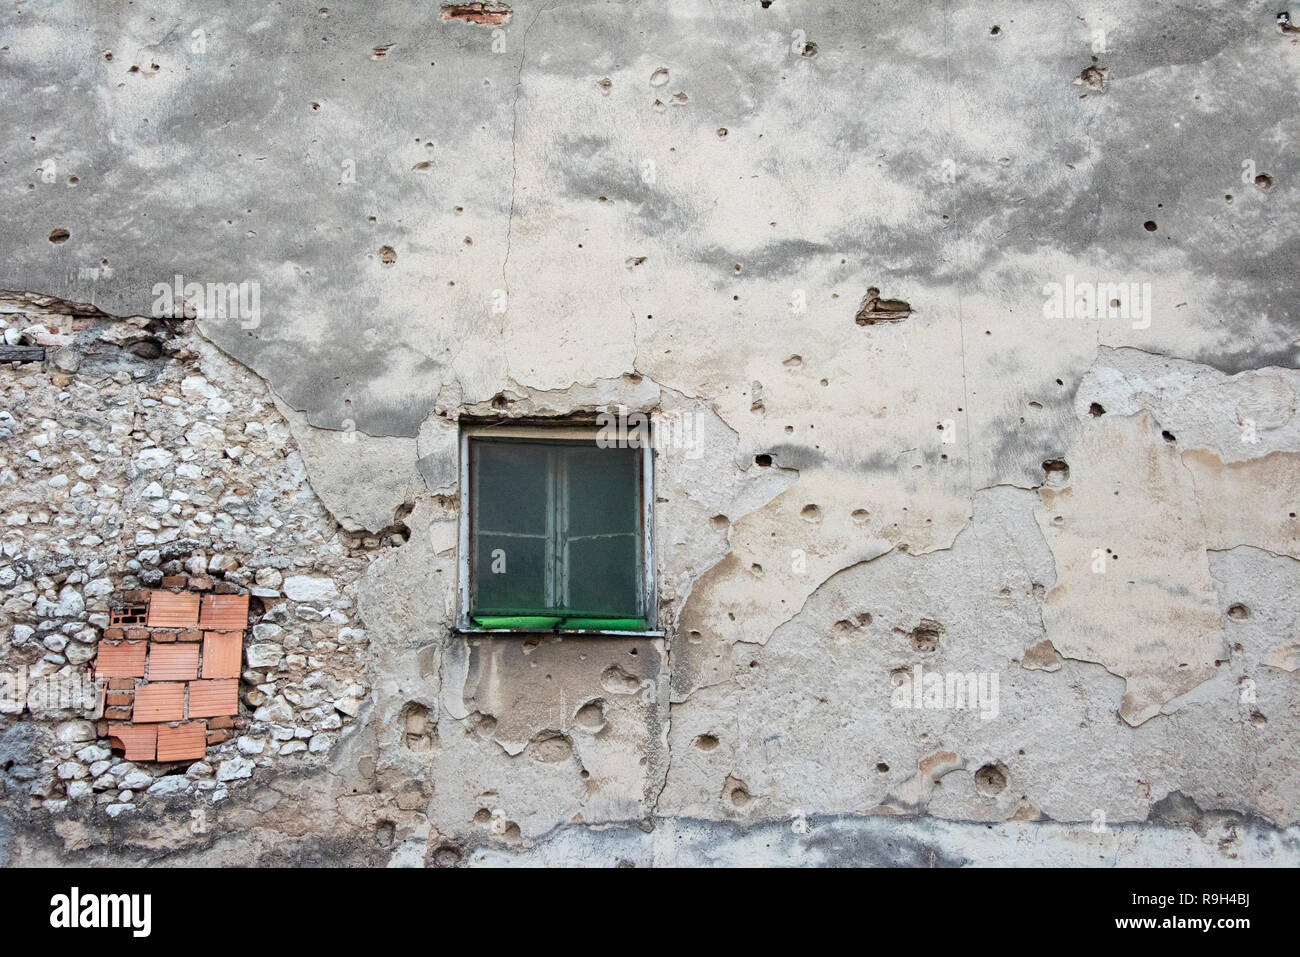 Old house with bullet holes, Mostar, Bosnia and Herzegovina - Stock Image